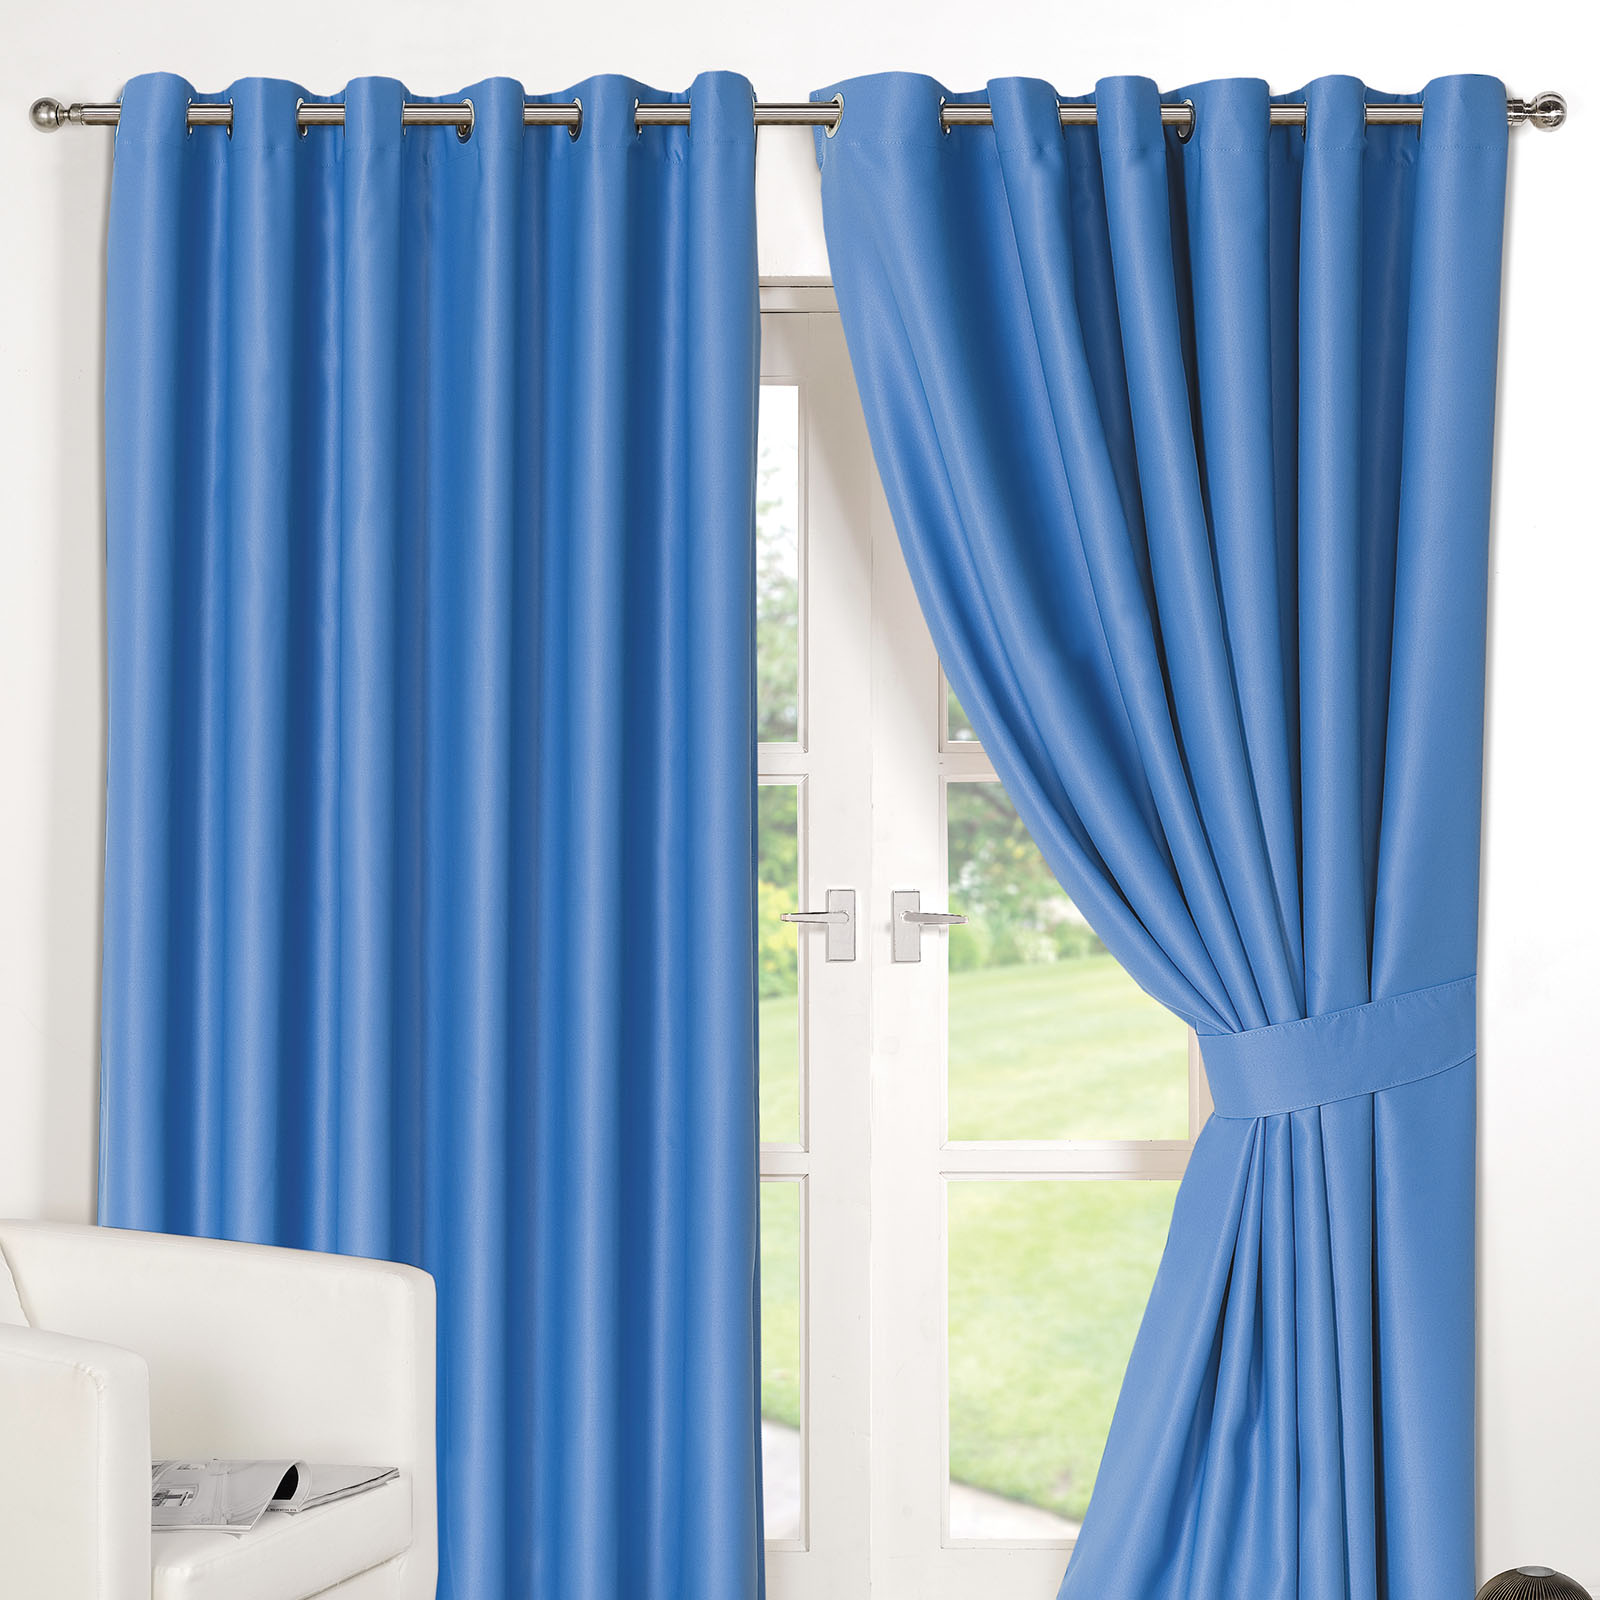 walmart royal mainstays panel curtain blue set of com sailcloth blackout ip curtains